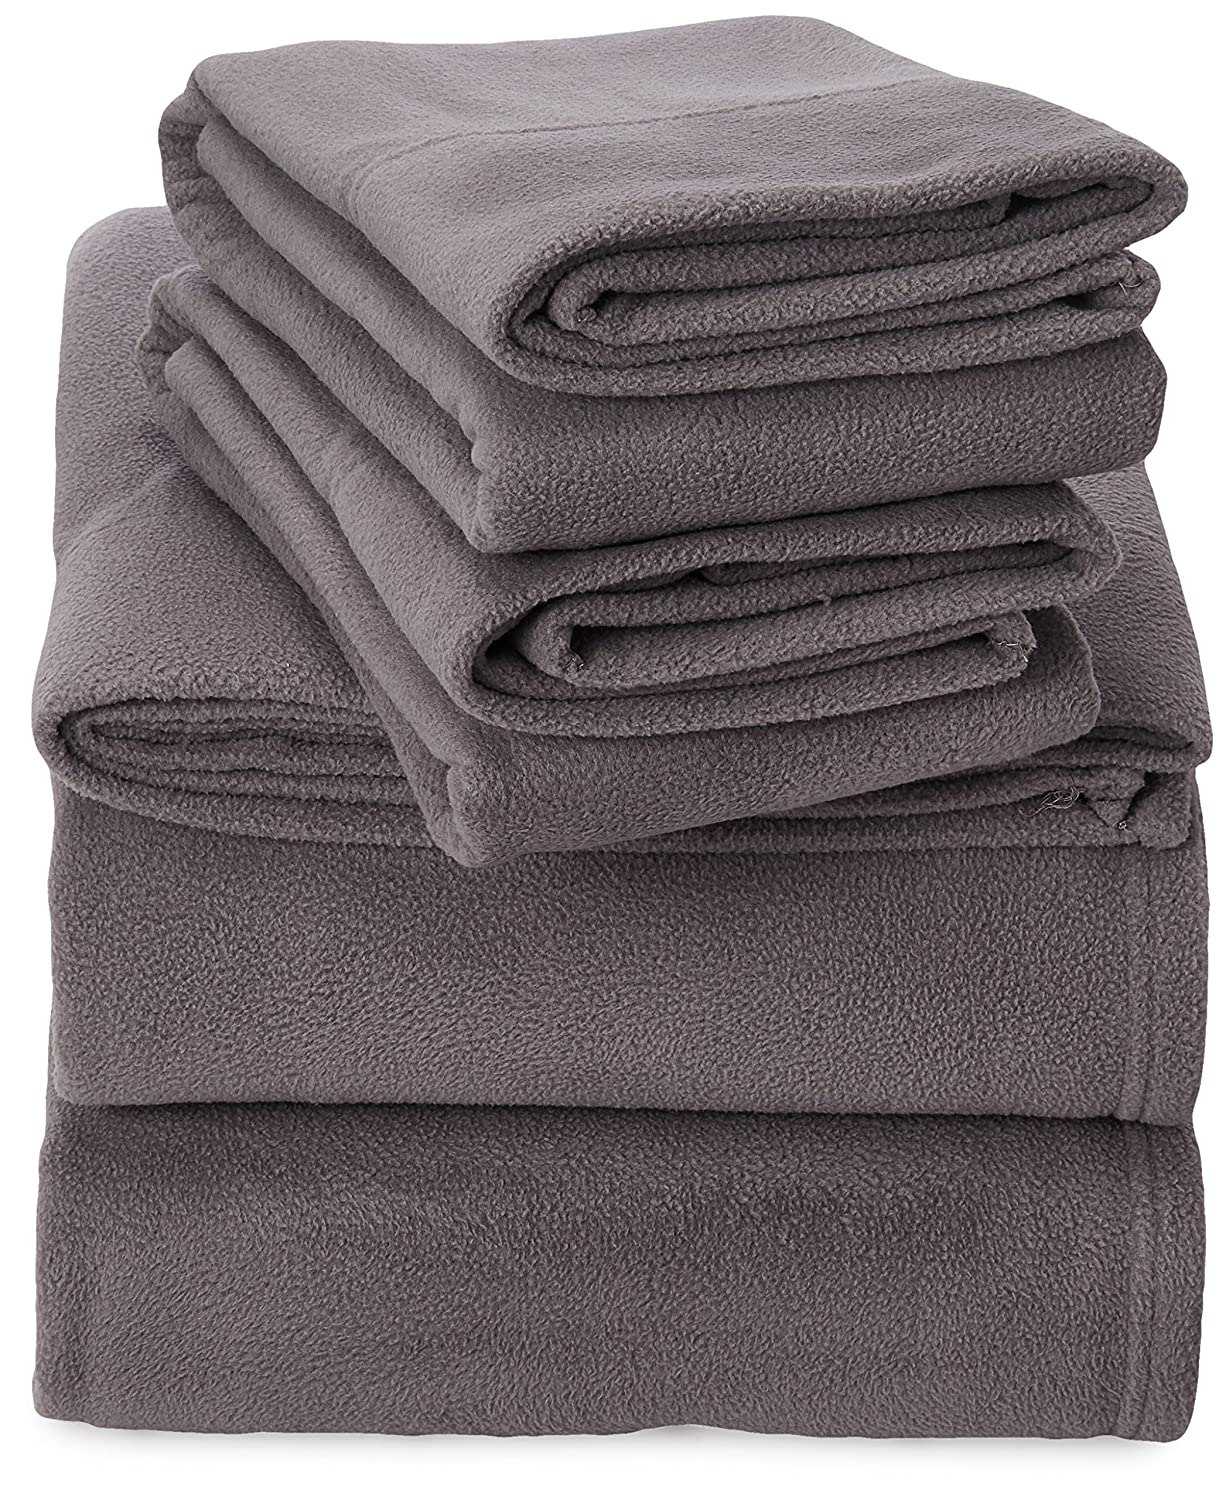 Peak Performance SHET20-592 Fleece Sheet Set